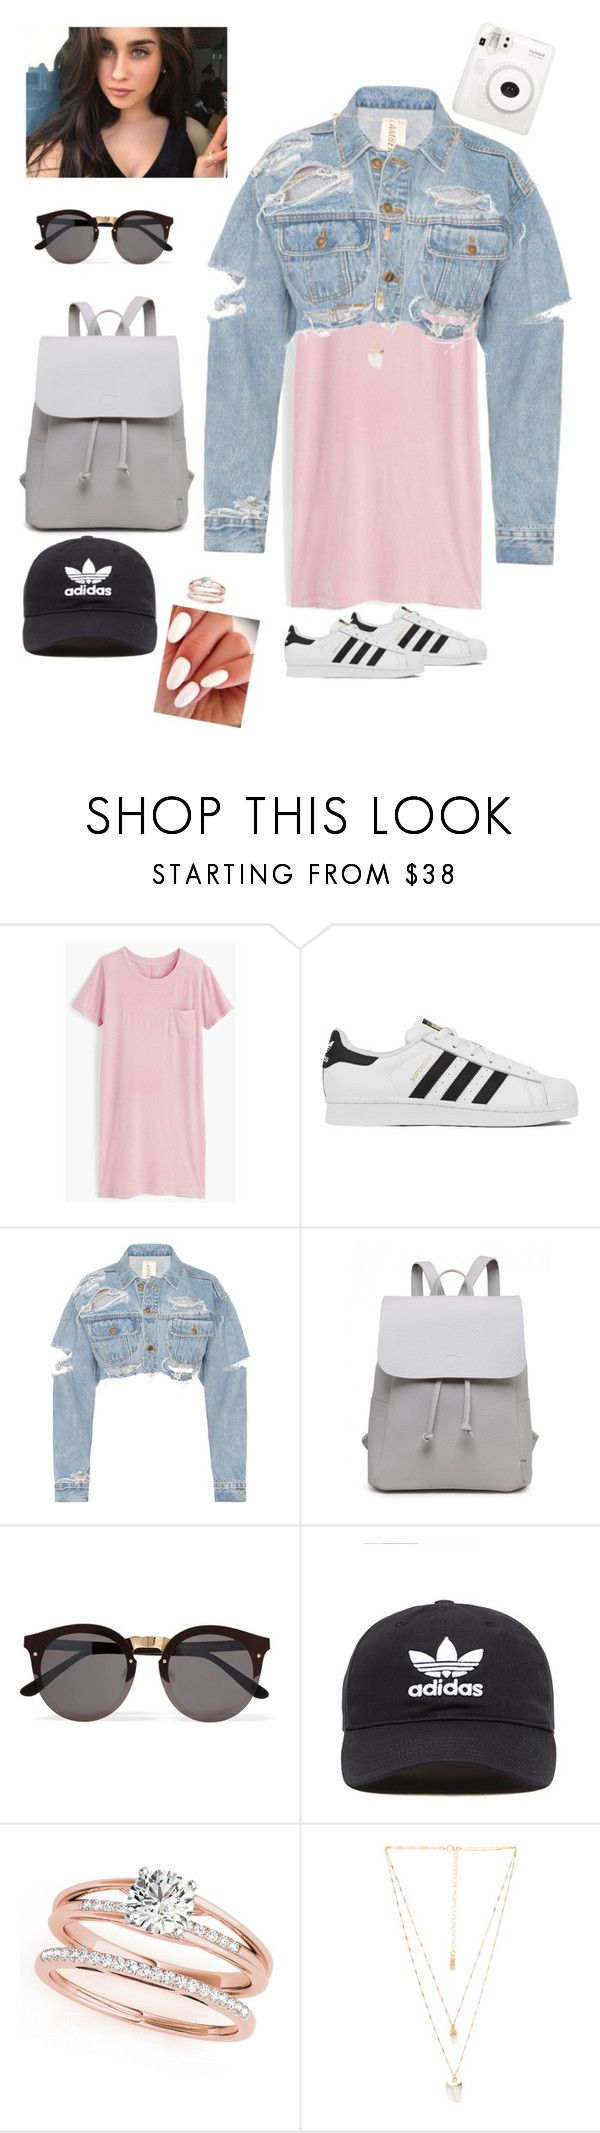 """LULU LOVE"" by lectoradelbosque on Polyvore featuring beauty, Remedios, J.Crew, adidas, Illesteva, adidas Originals and Natalie B"